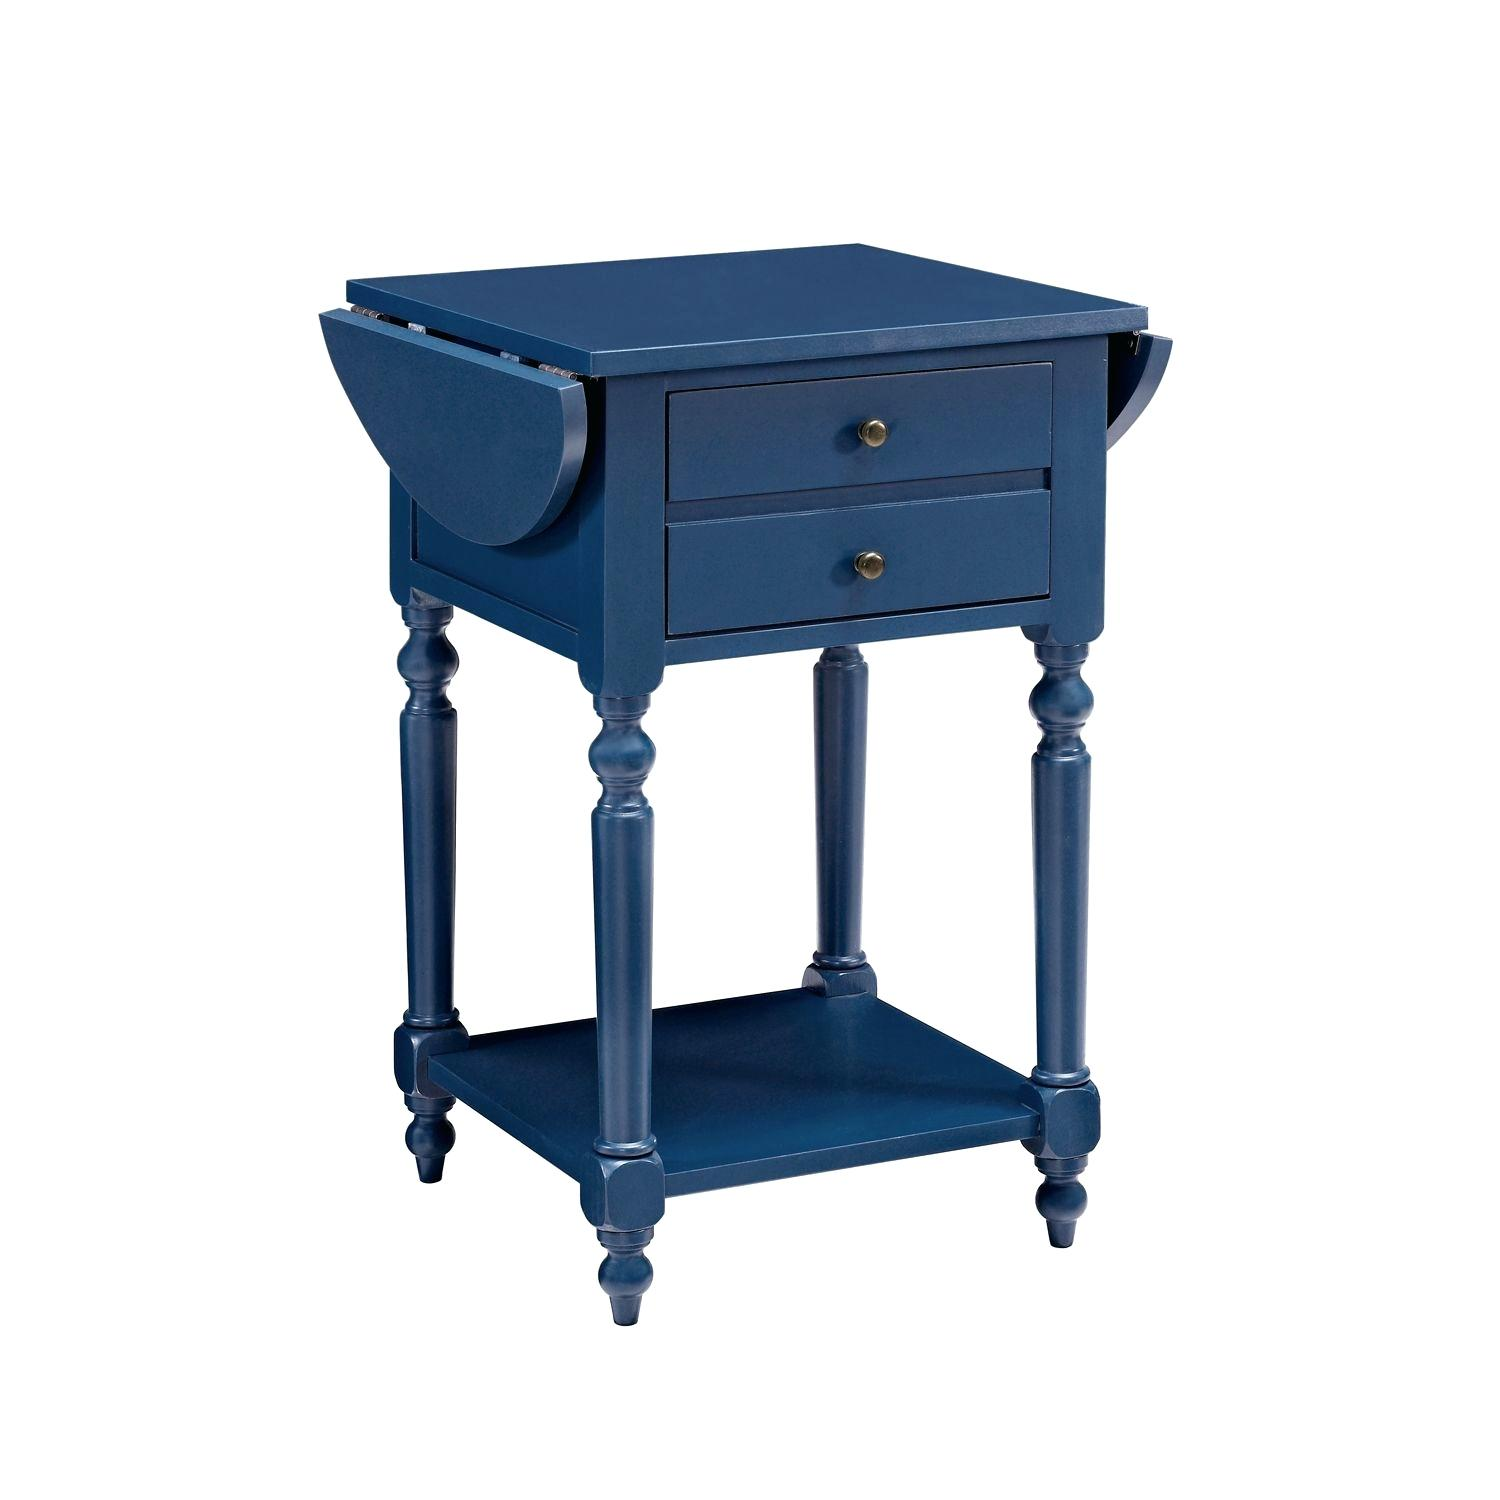 blue accent table navy side stylish outdoor red room essentials stacking metal clock patio furniture covers with tray butler round small ikea gallerie beds garden wood stump